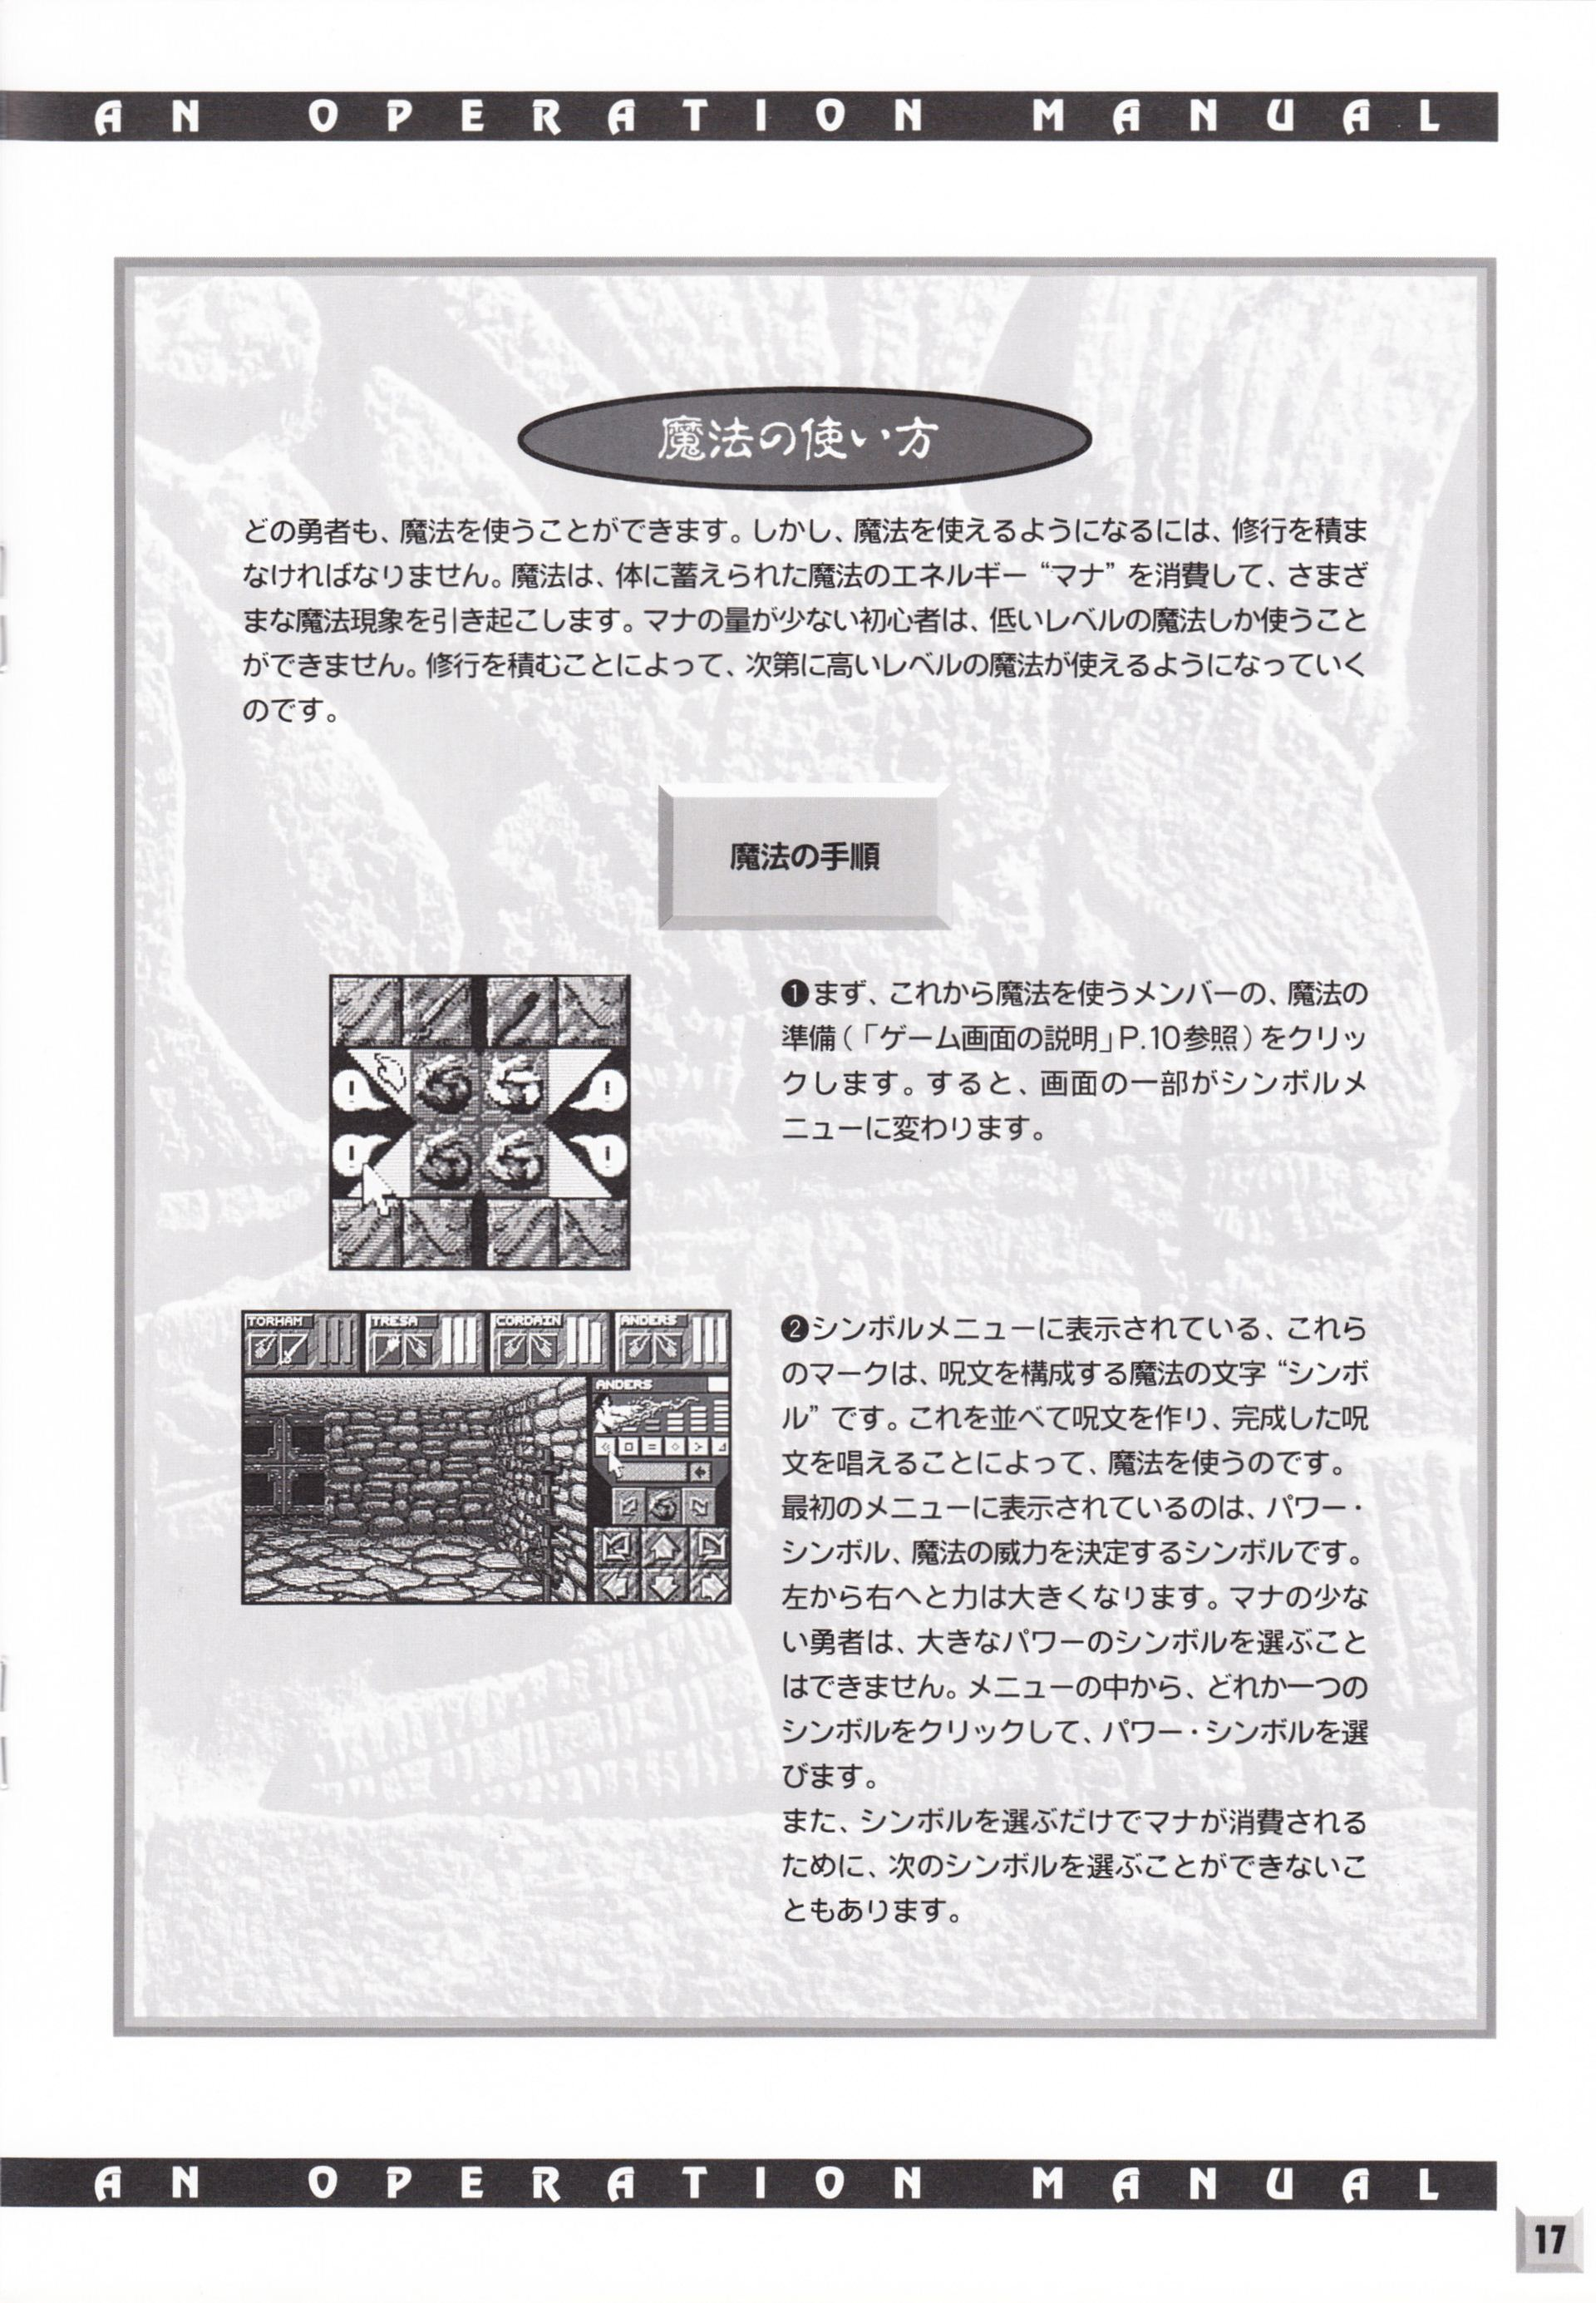 Game - Dungeon Master II - JP - PC-9801 - 3.5-inch - An Operation Manual - Page 019 - Scan